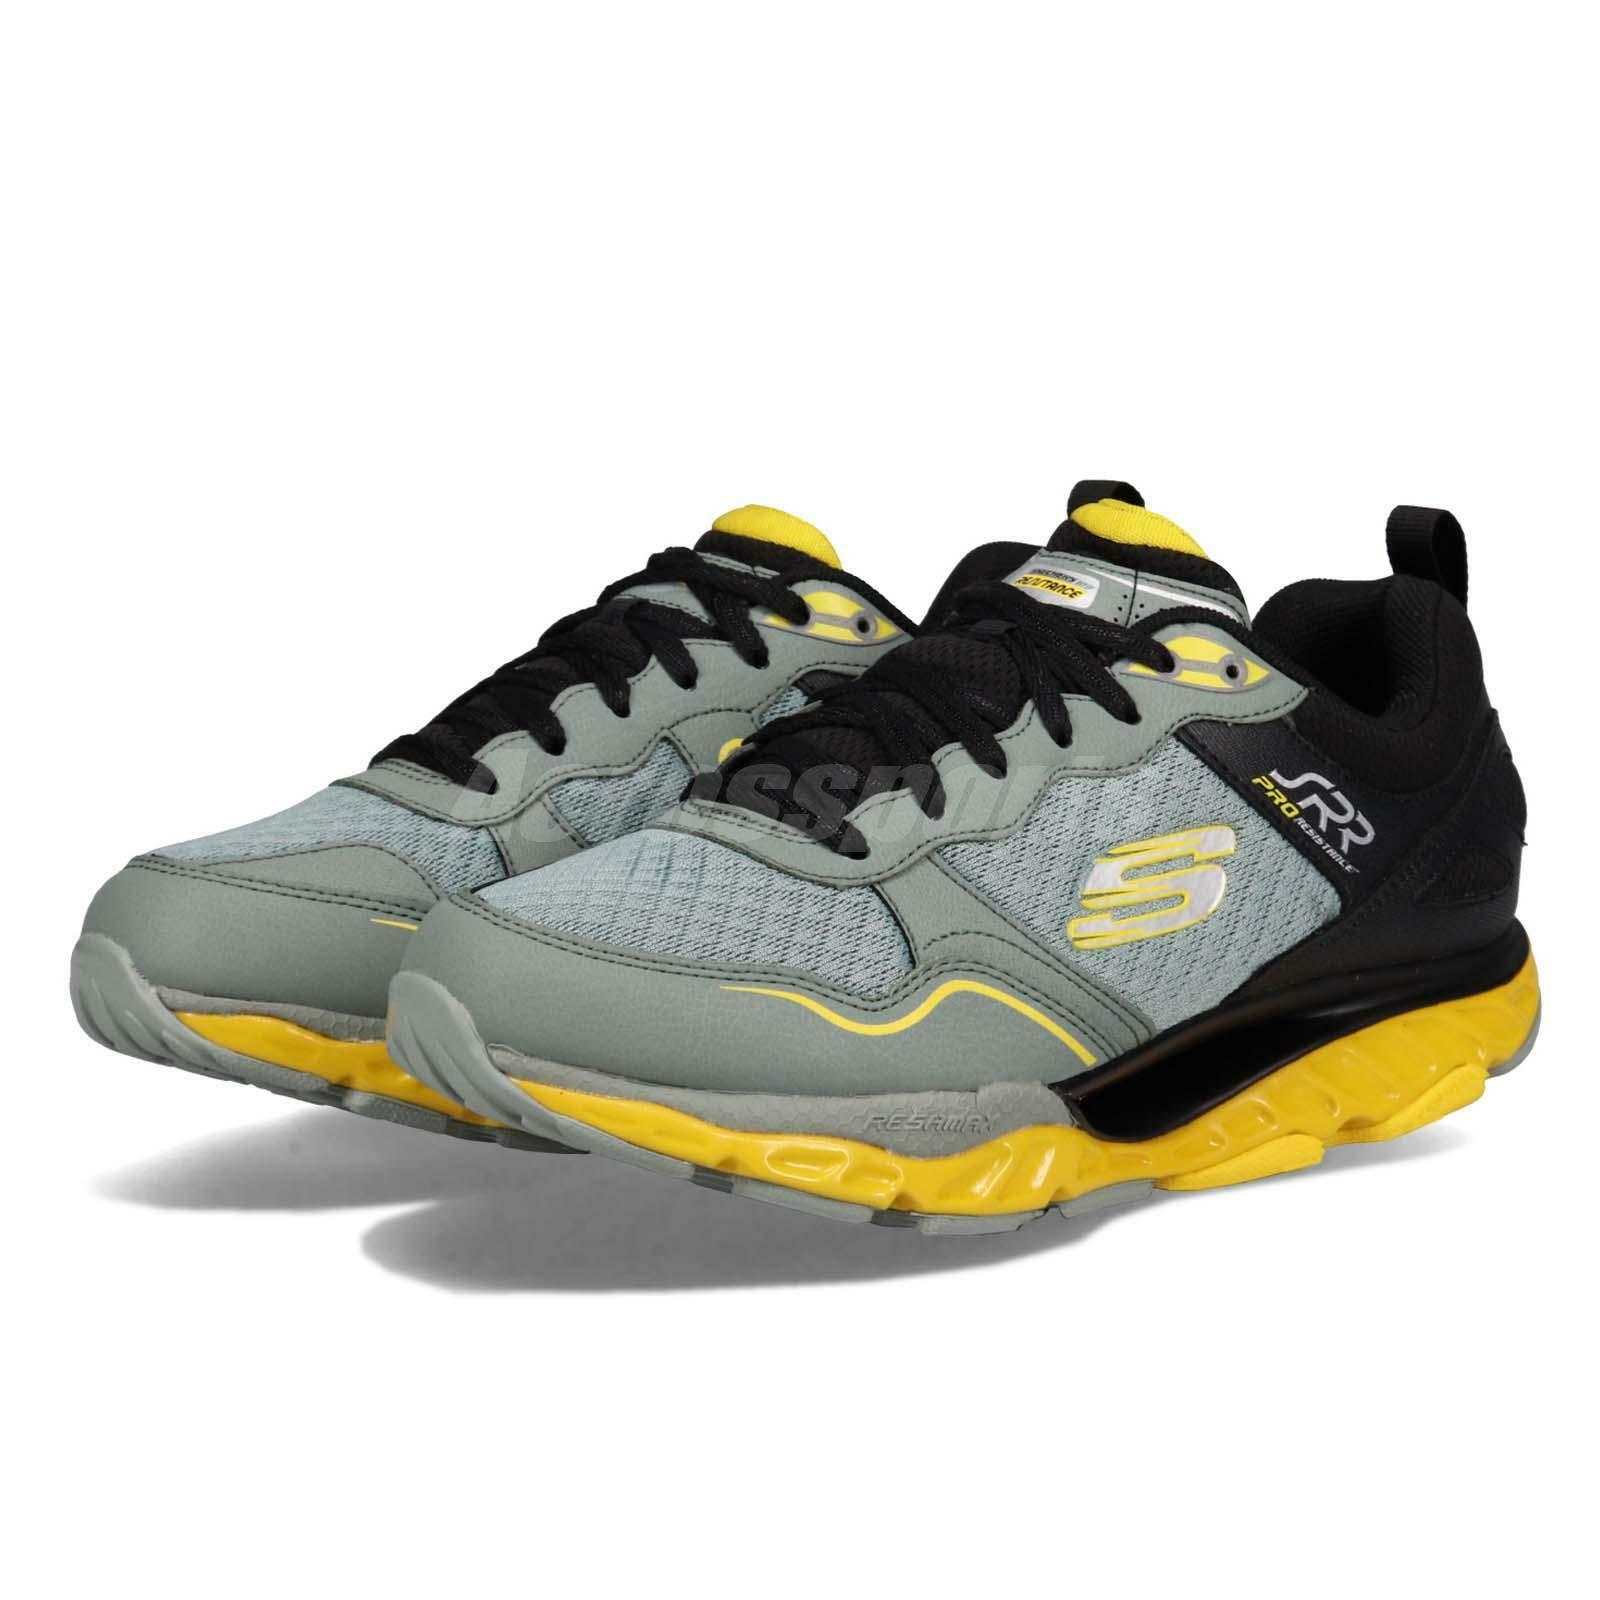 Skechers SRR Pro-Resistance-Runway Charcoal Yellow Men Running shoes 999124-CCYL